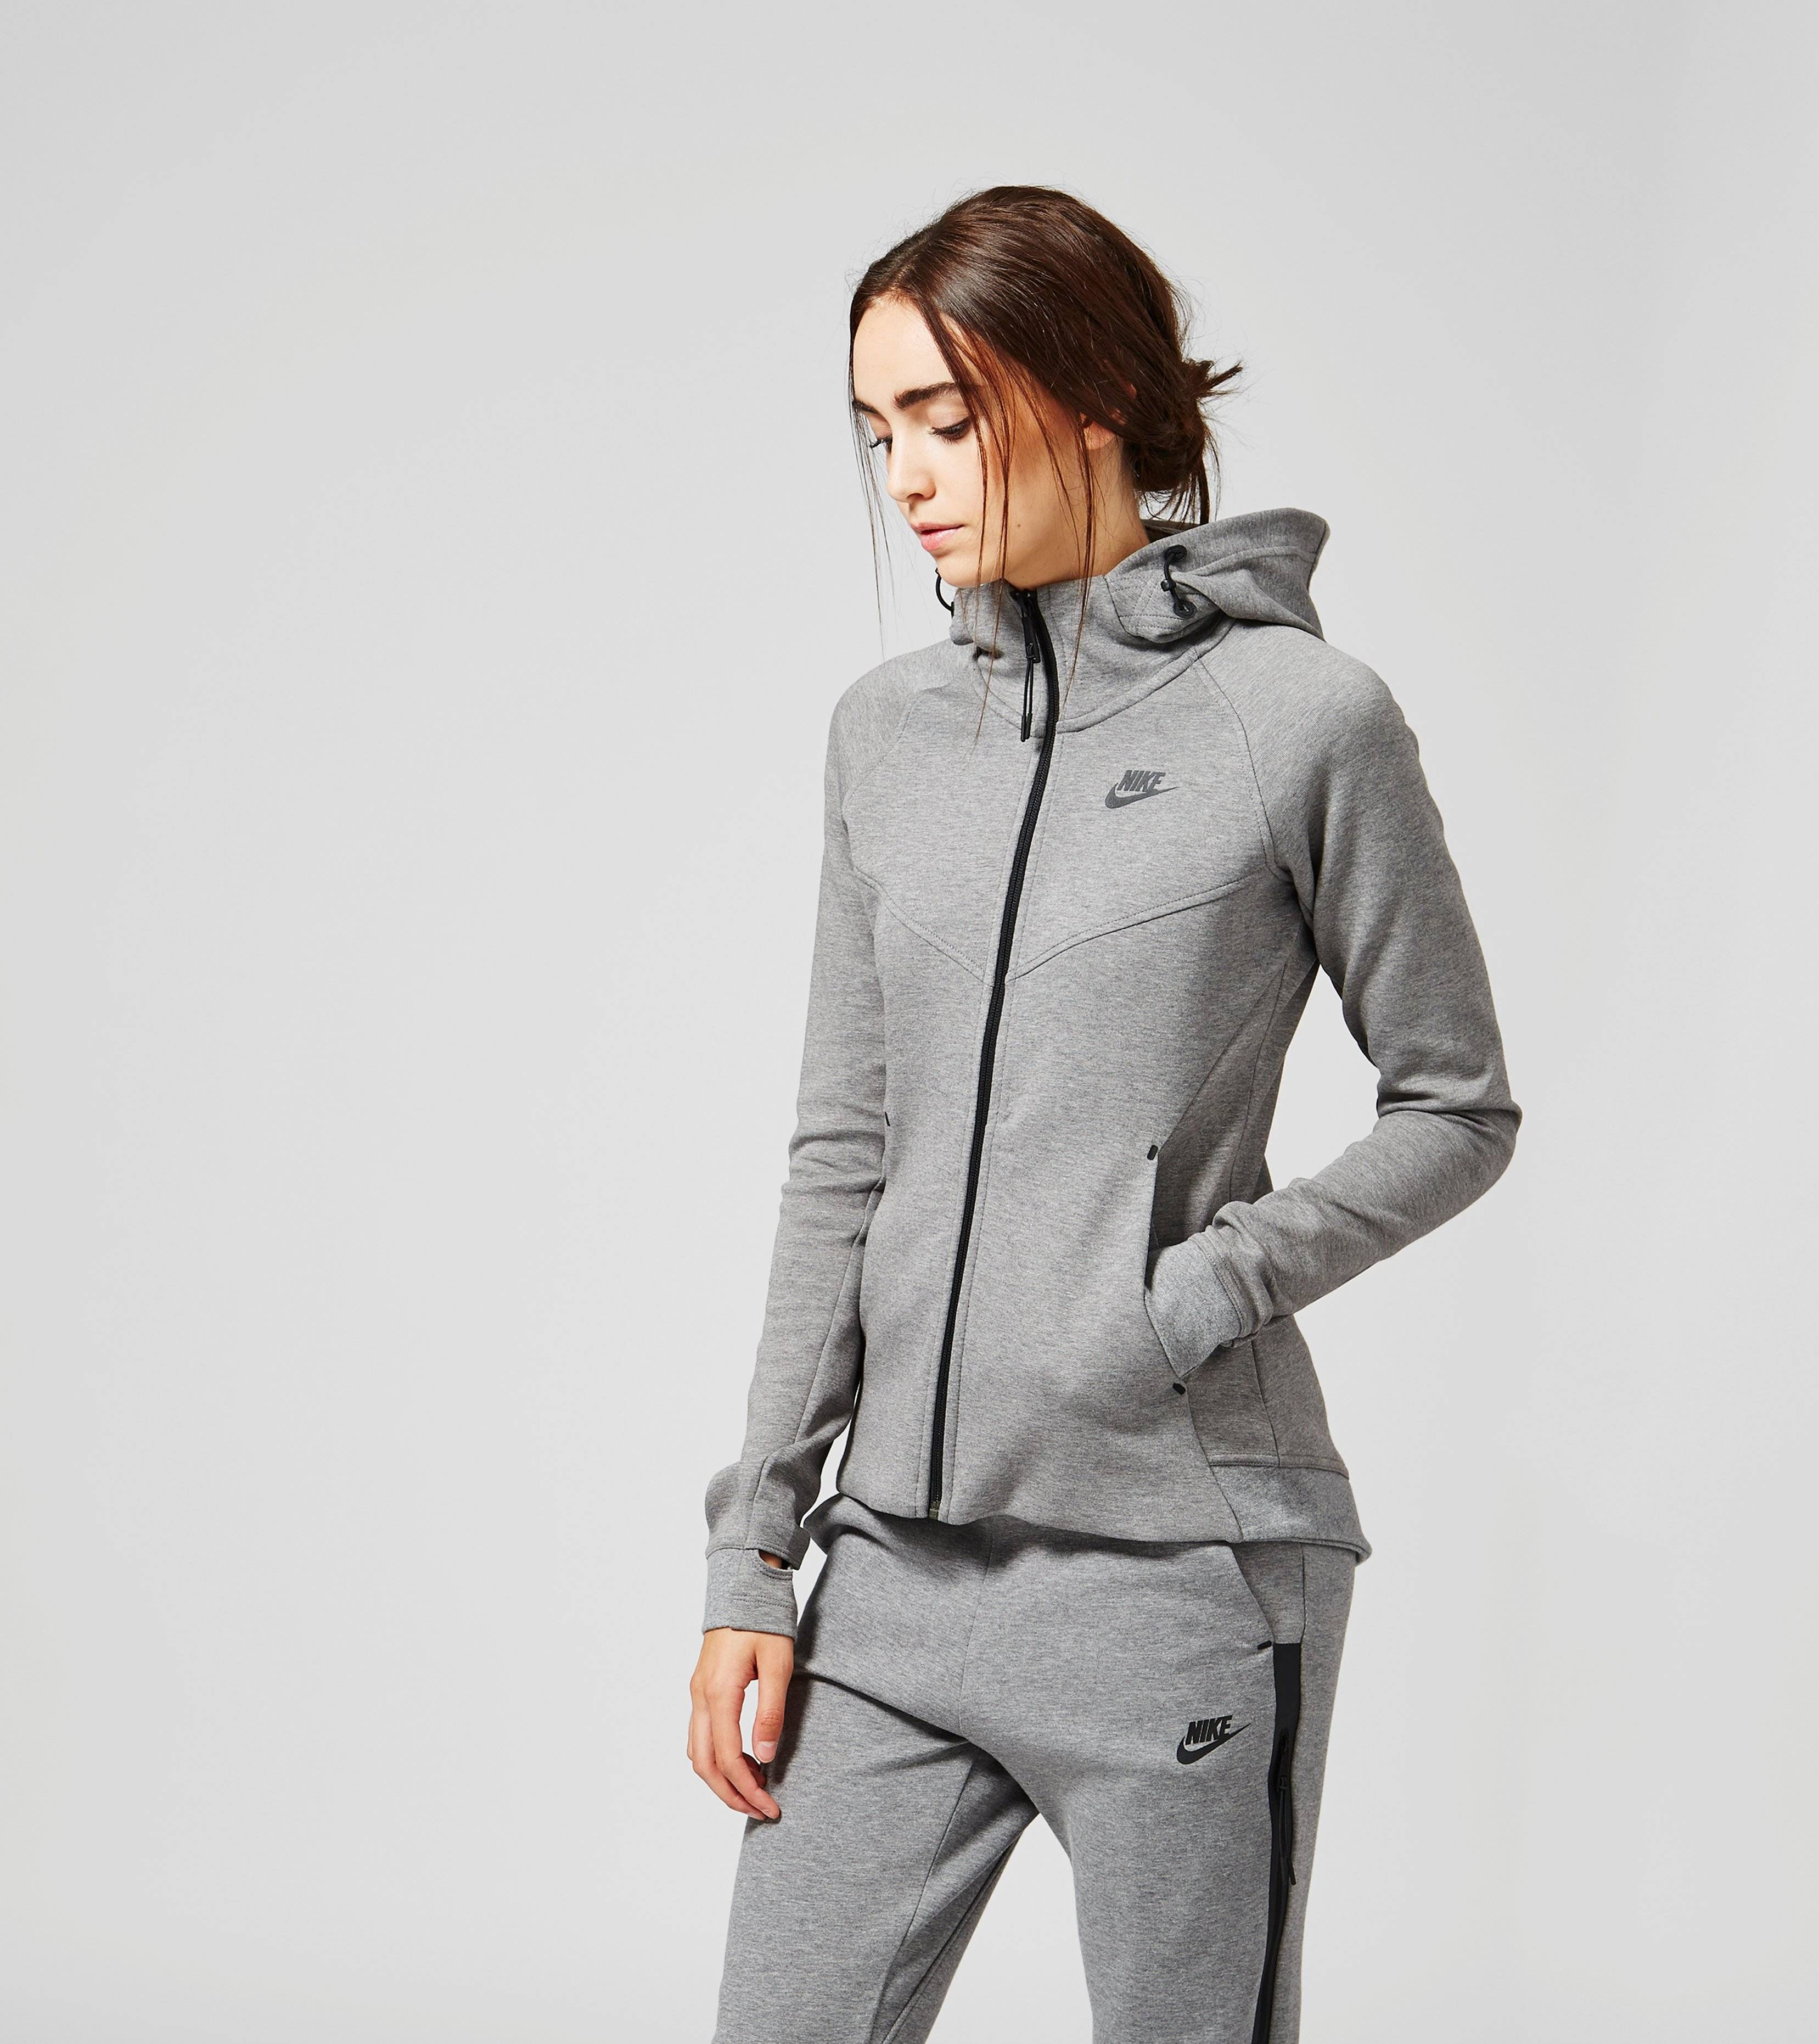 886ba8d62 Nike Tech Fleece Zip Hoody - find out more on our site. Find the freshest  in trainers and clothing online now.